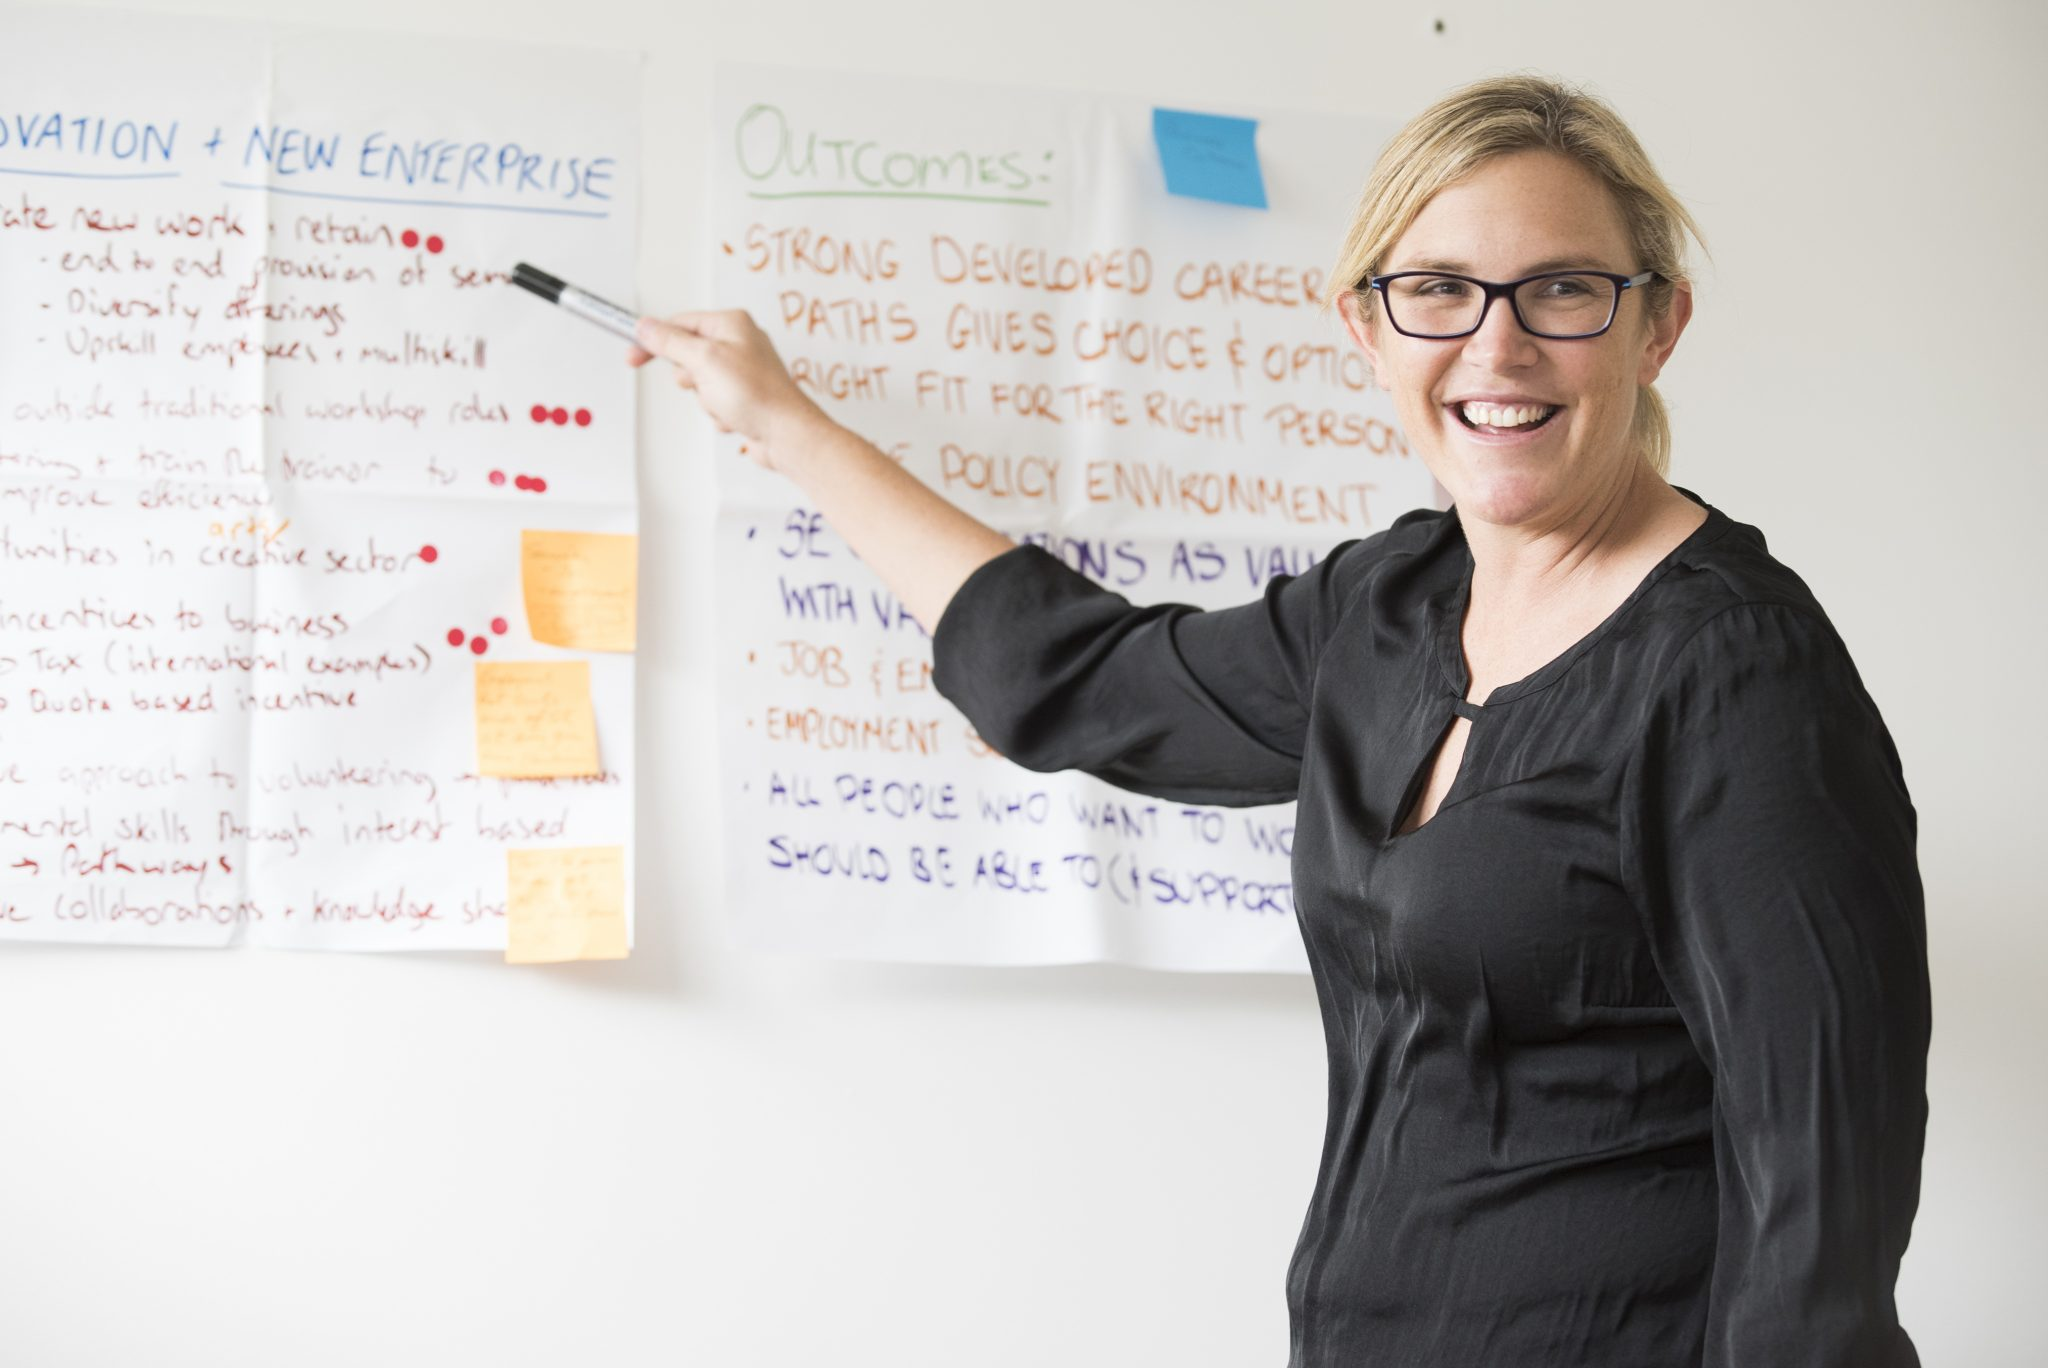 A photo of a woman facilitating a workshop. She is pointing to post-it notes on the wall behind her.